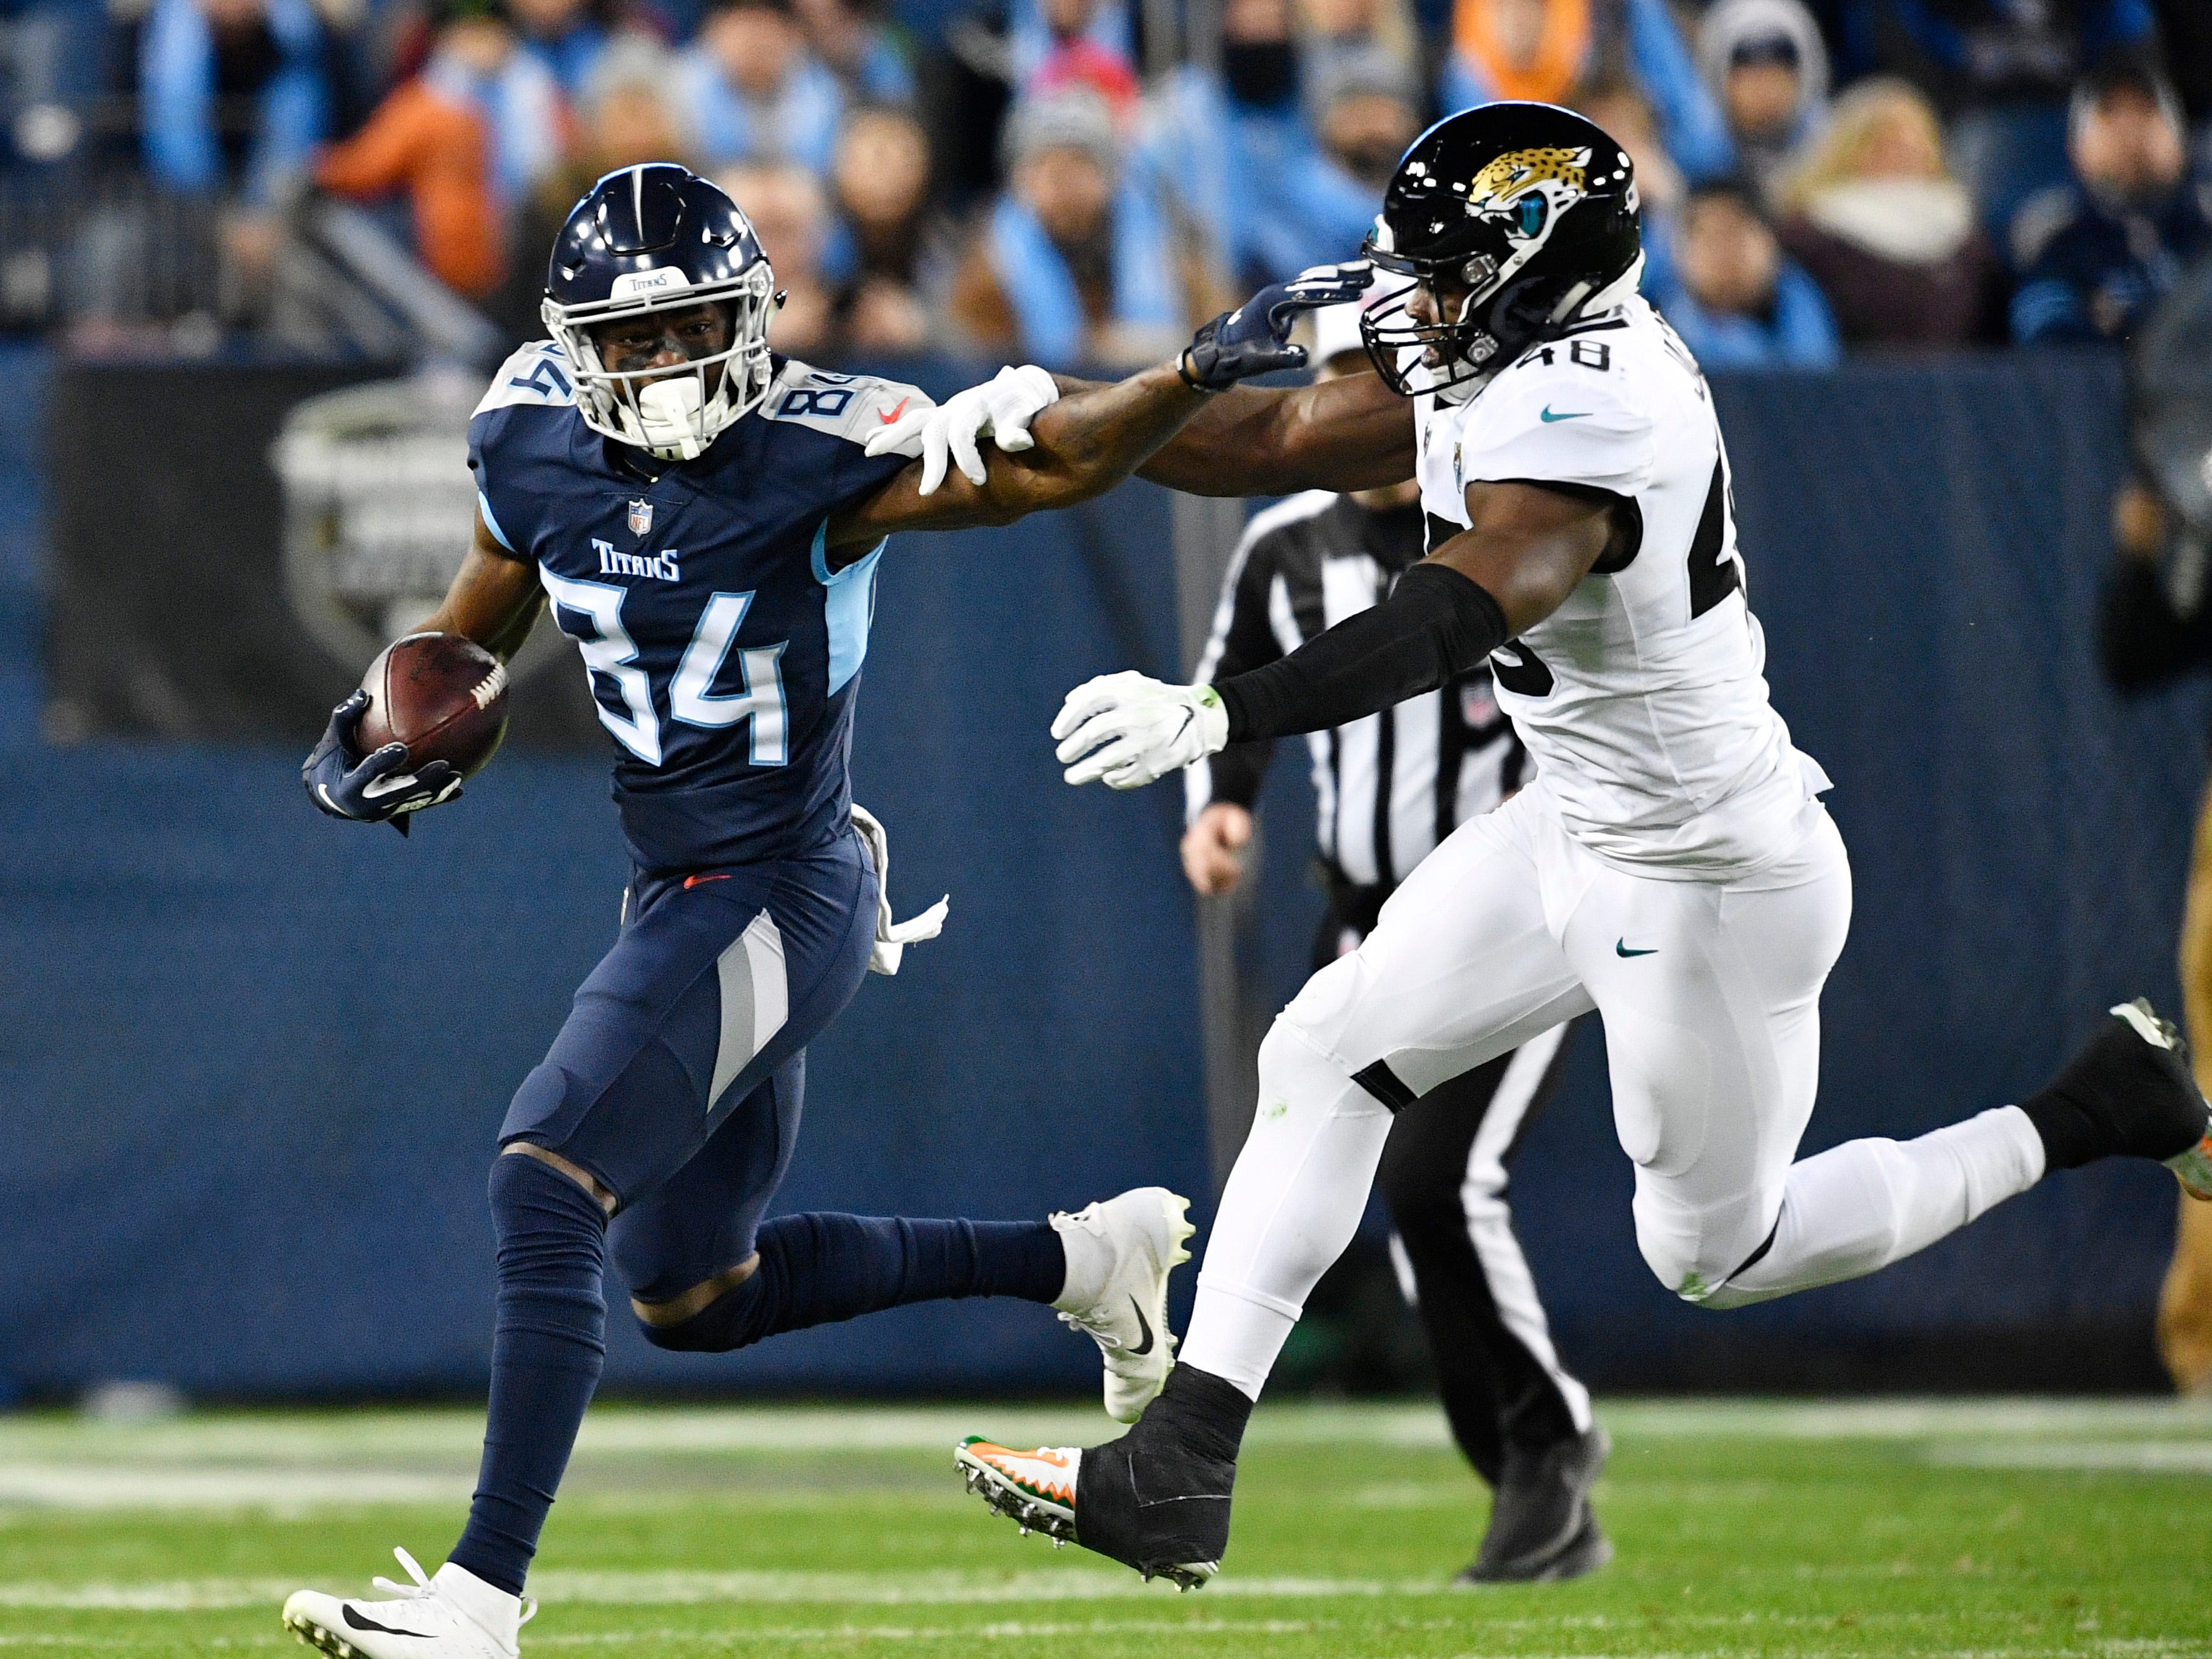 Titans wide receiver Corey Davis (84) gains yards after a catch in the first half at Nissan Stadium Thursday, Dec. 6, 2018, in Nashville, Tenn.